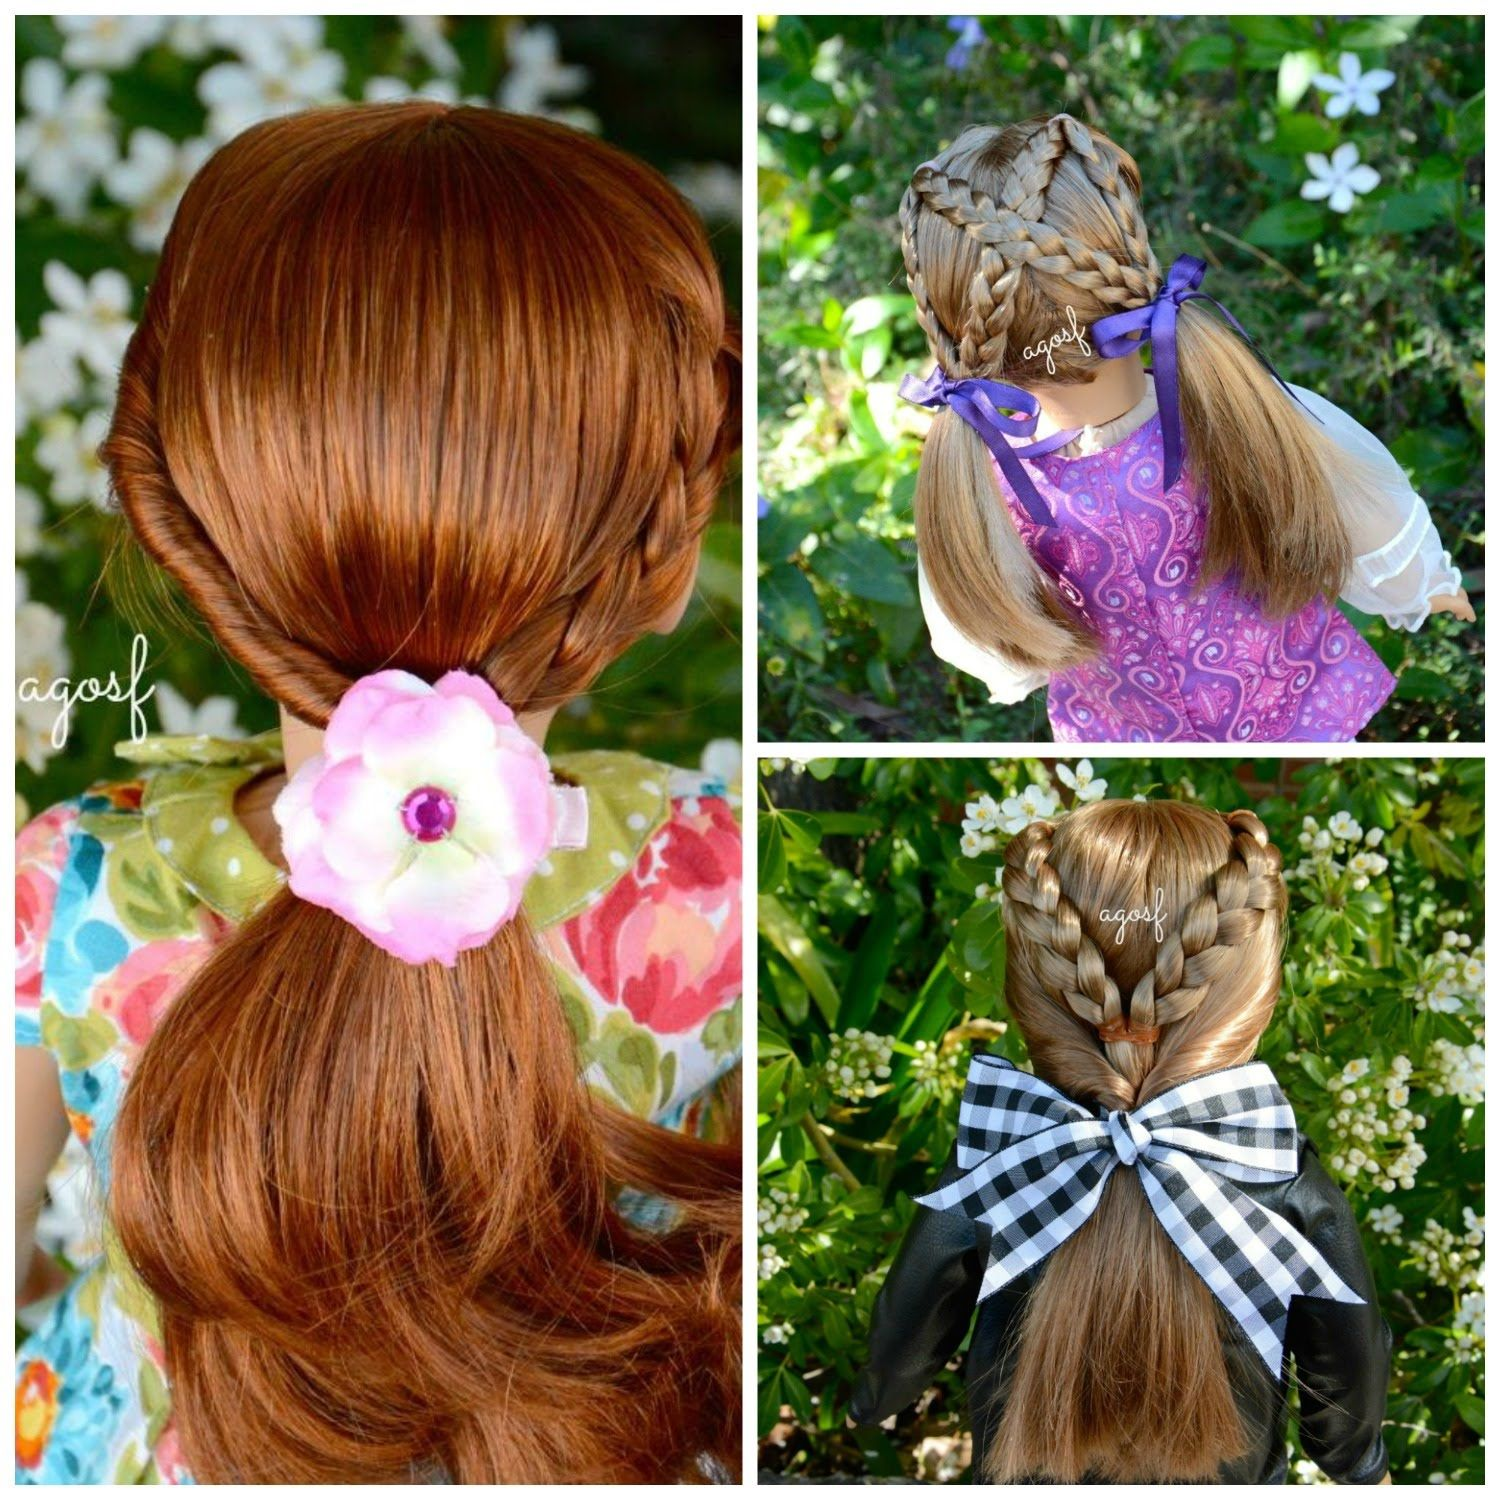 American Girl Doll Disney Hairstyles : American girl doll hair salon hairstyles by agoverseasfan